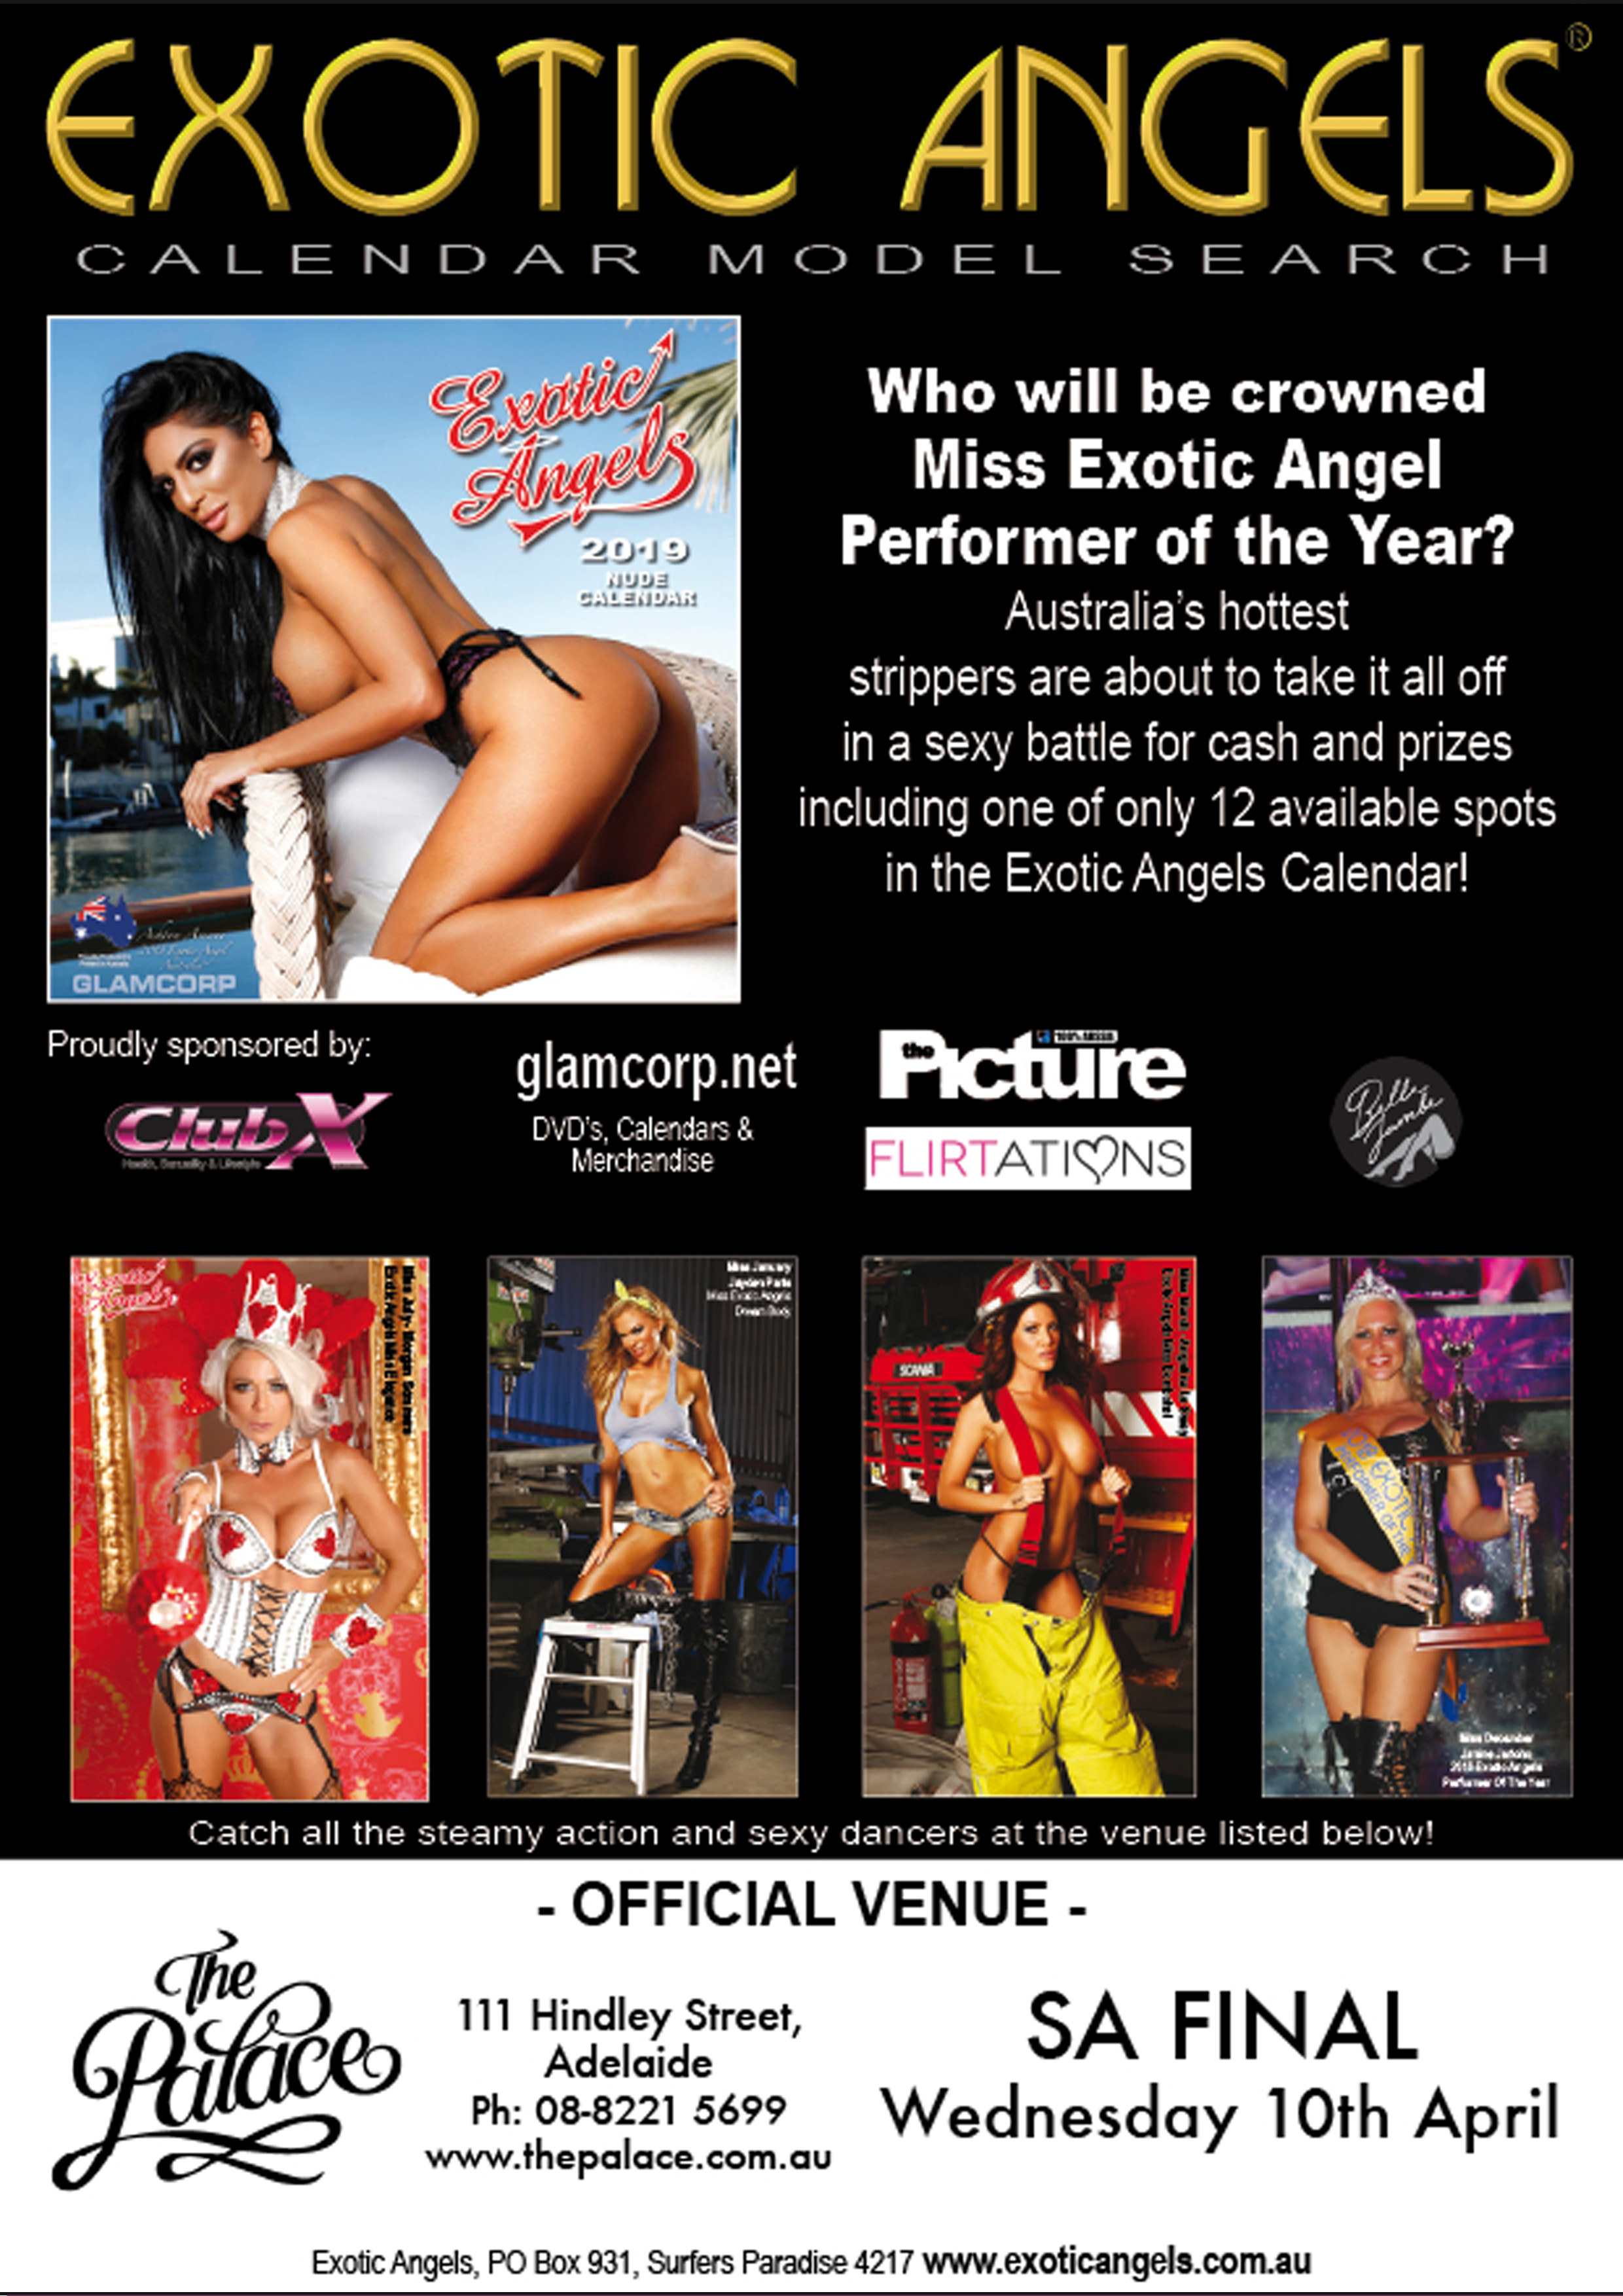 Exotic Angels - The Palace Adelaide, 111 Hindley St, Adelaide